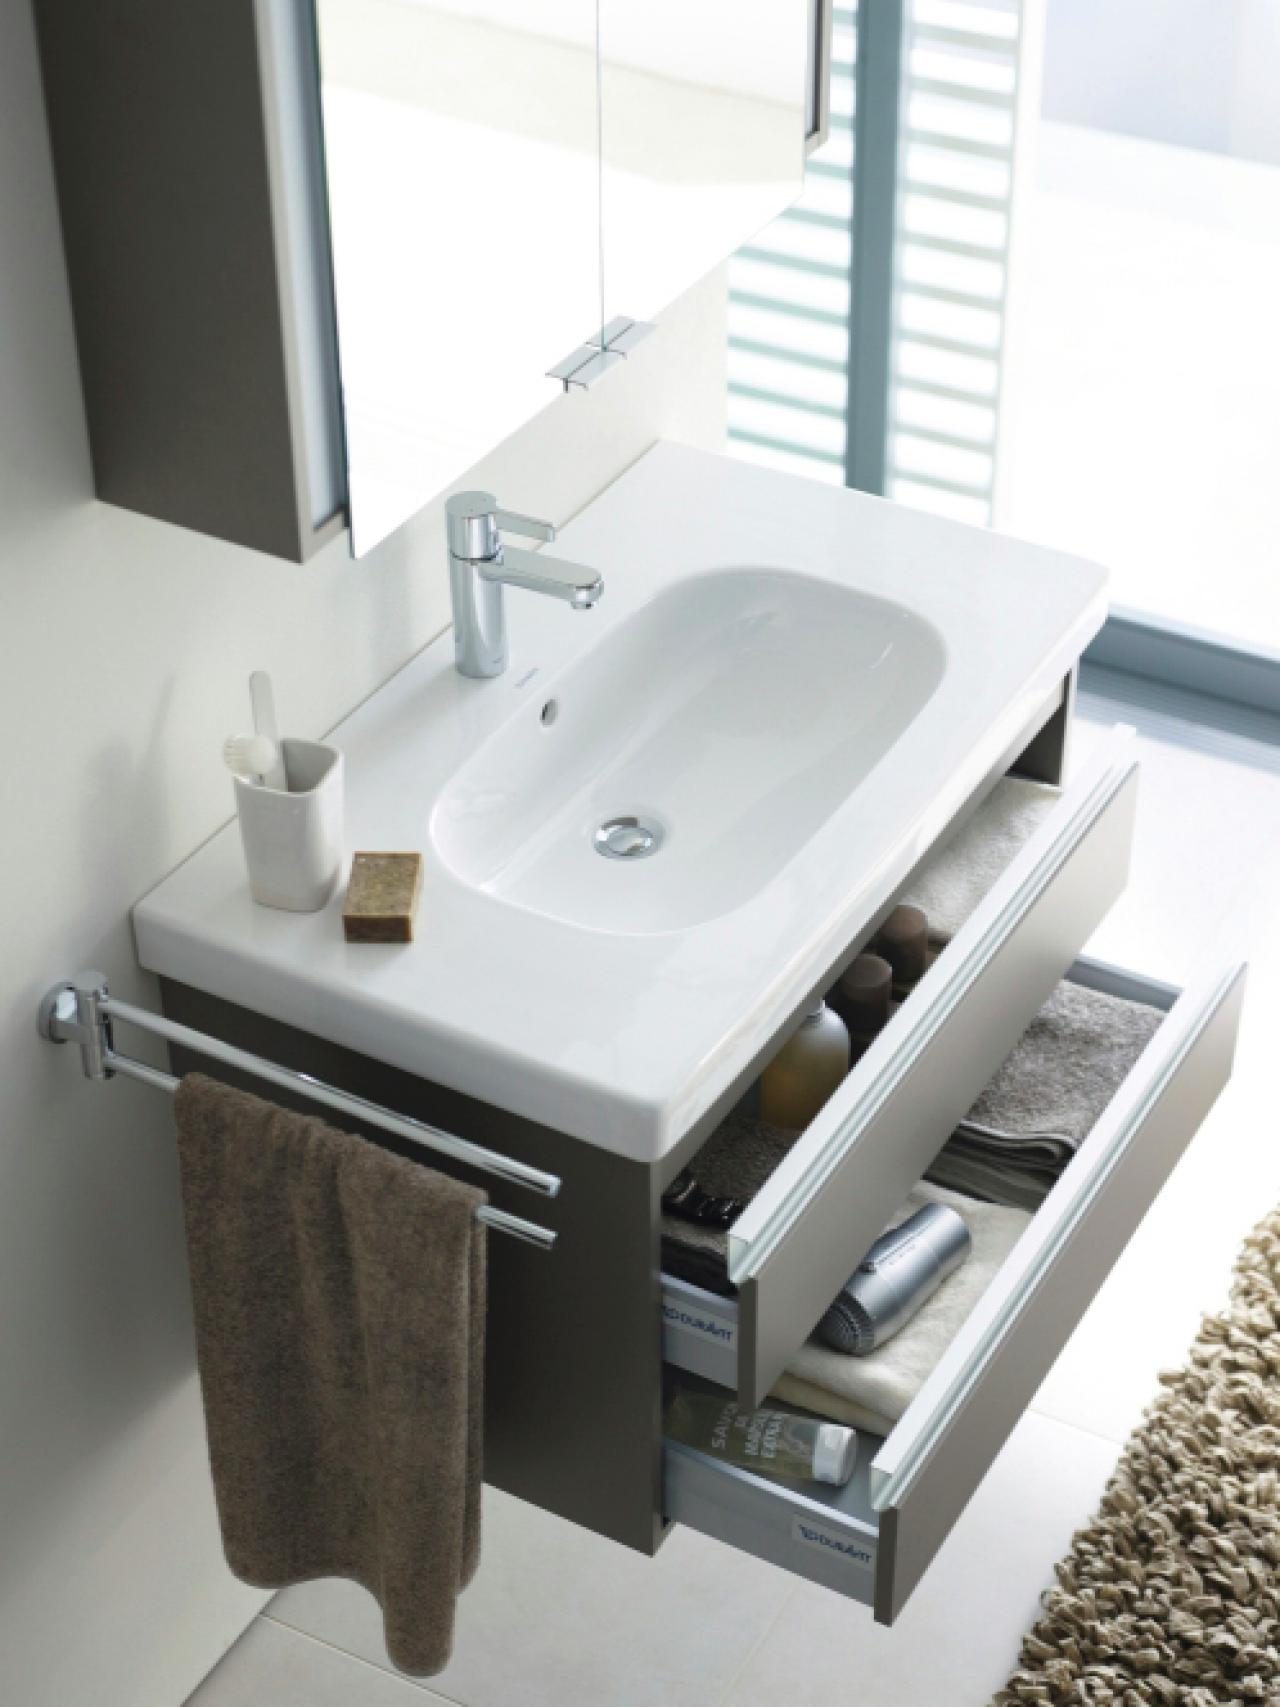 Choosing a bathroom vanity hgtv - Bathroom cabinets for small spaces plan ...